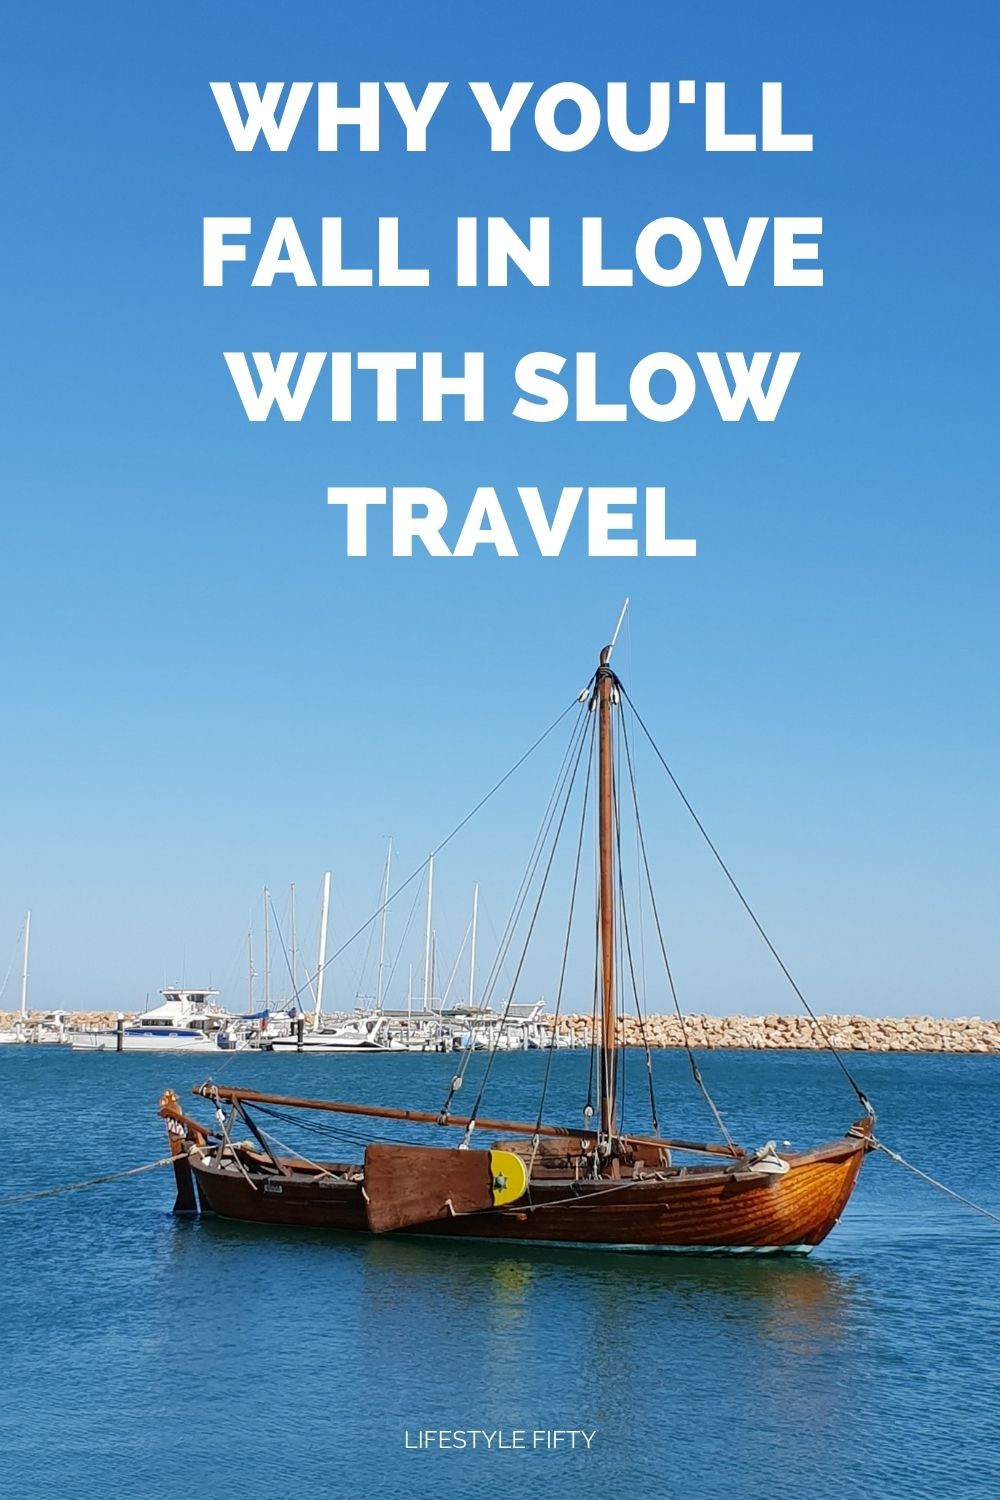 boat on a blue sea, text overlay, 'why you'll fall in love with slow travel,'